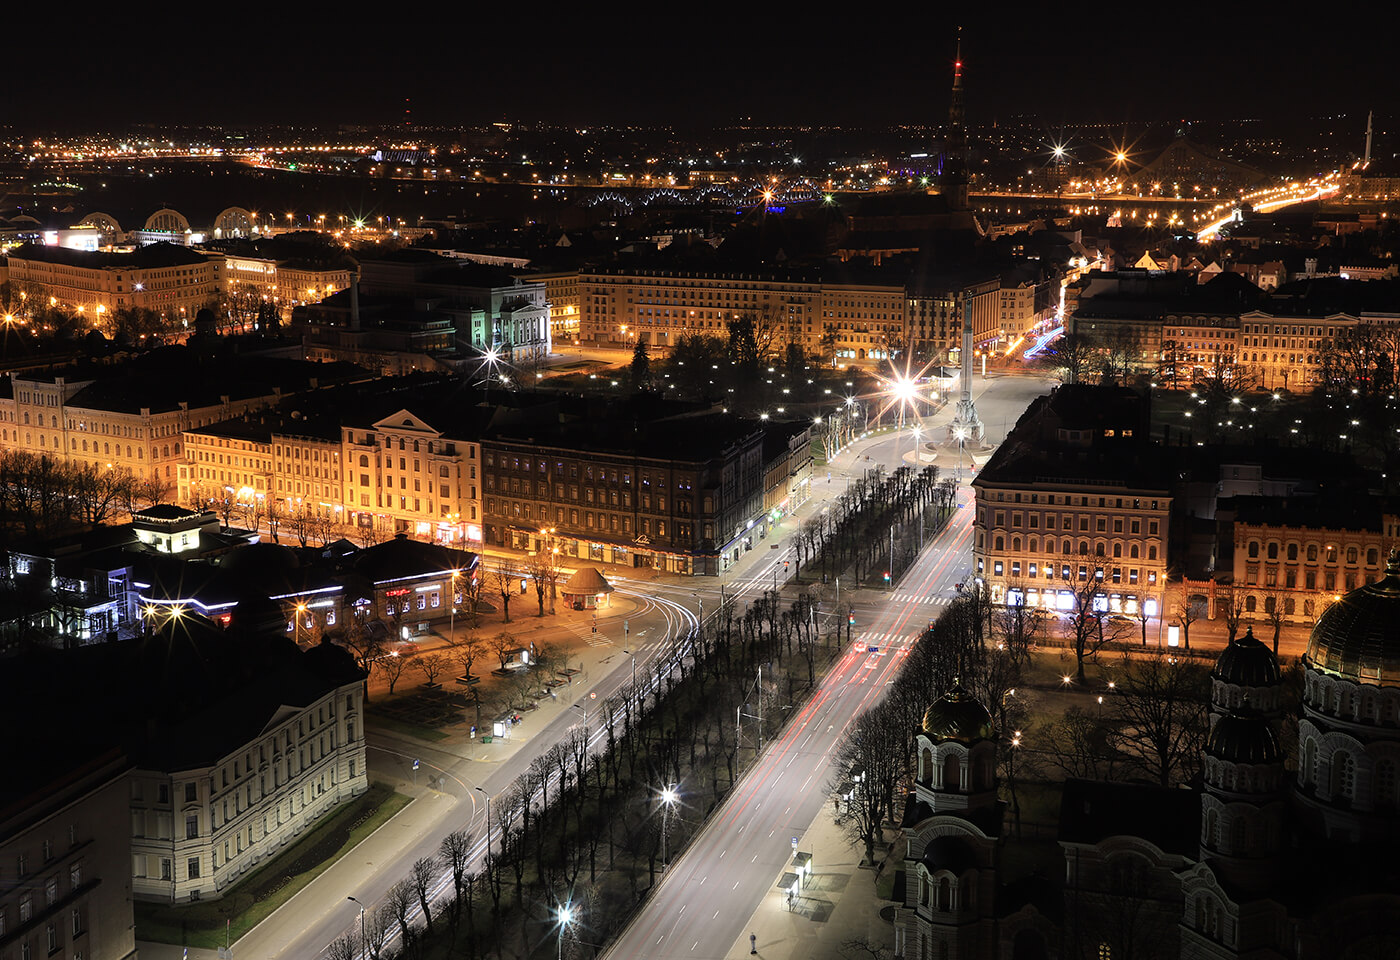 Low light image of a European city - sample photo by Canon EOS 6D Mark II